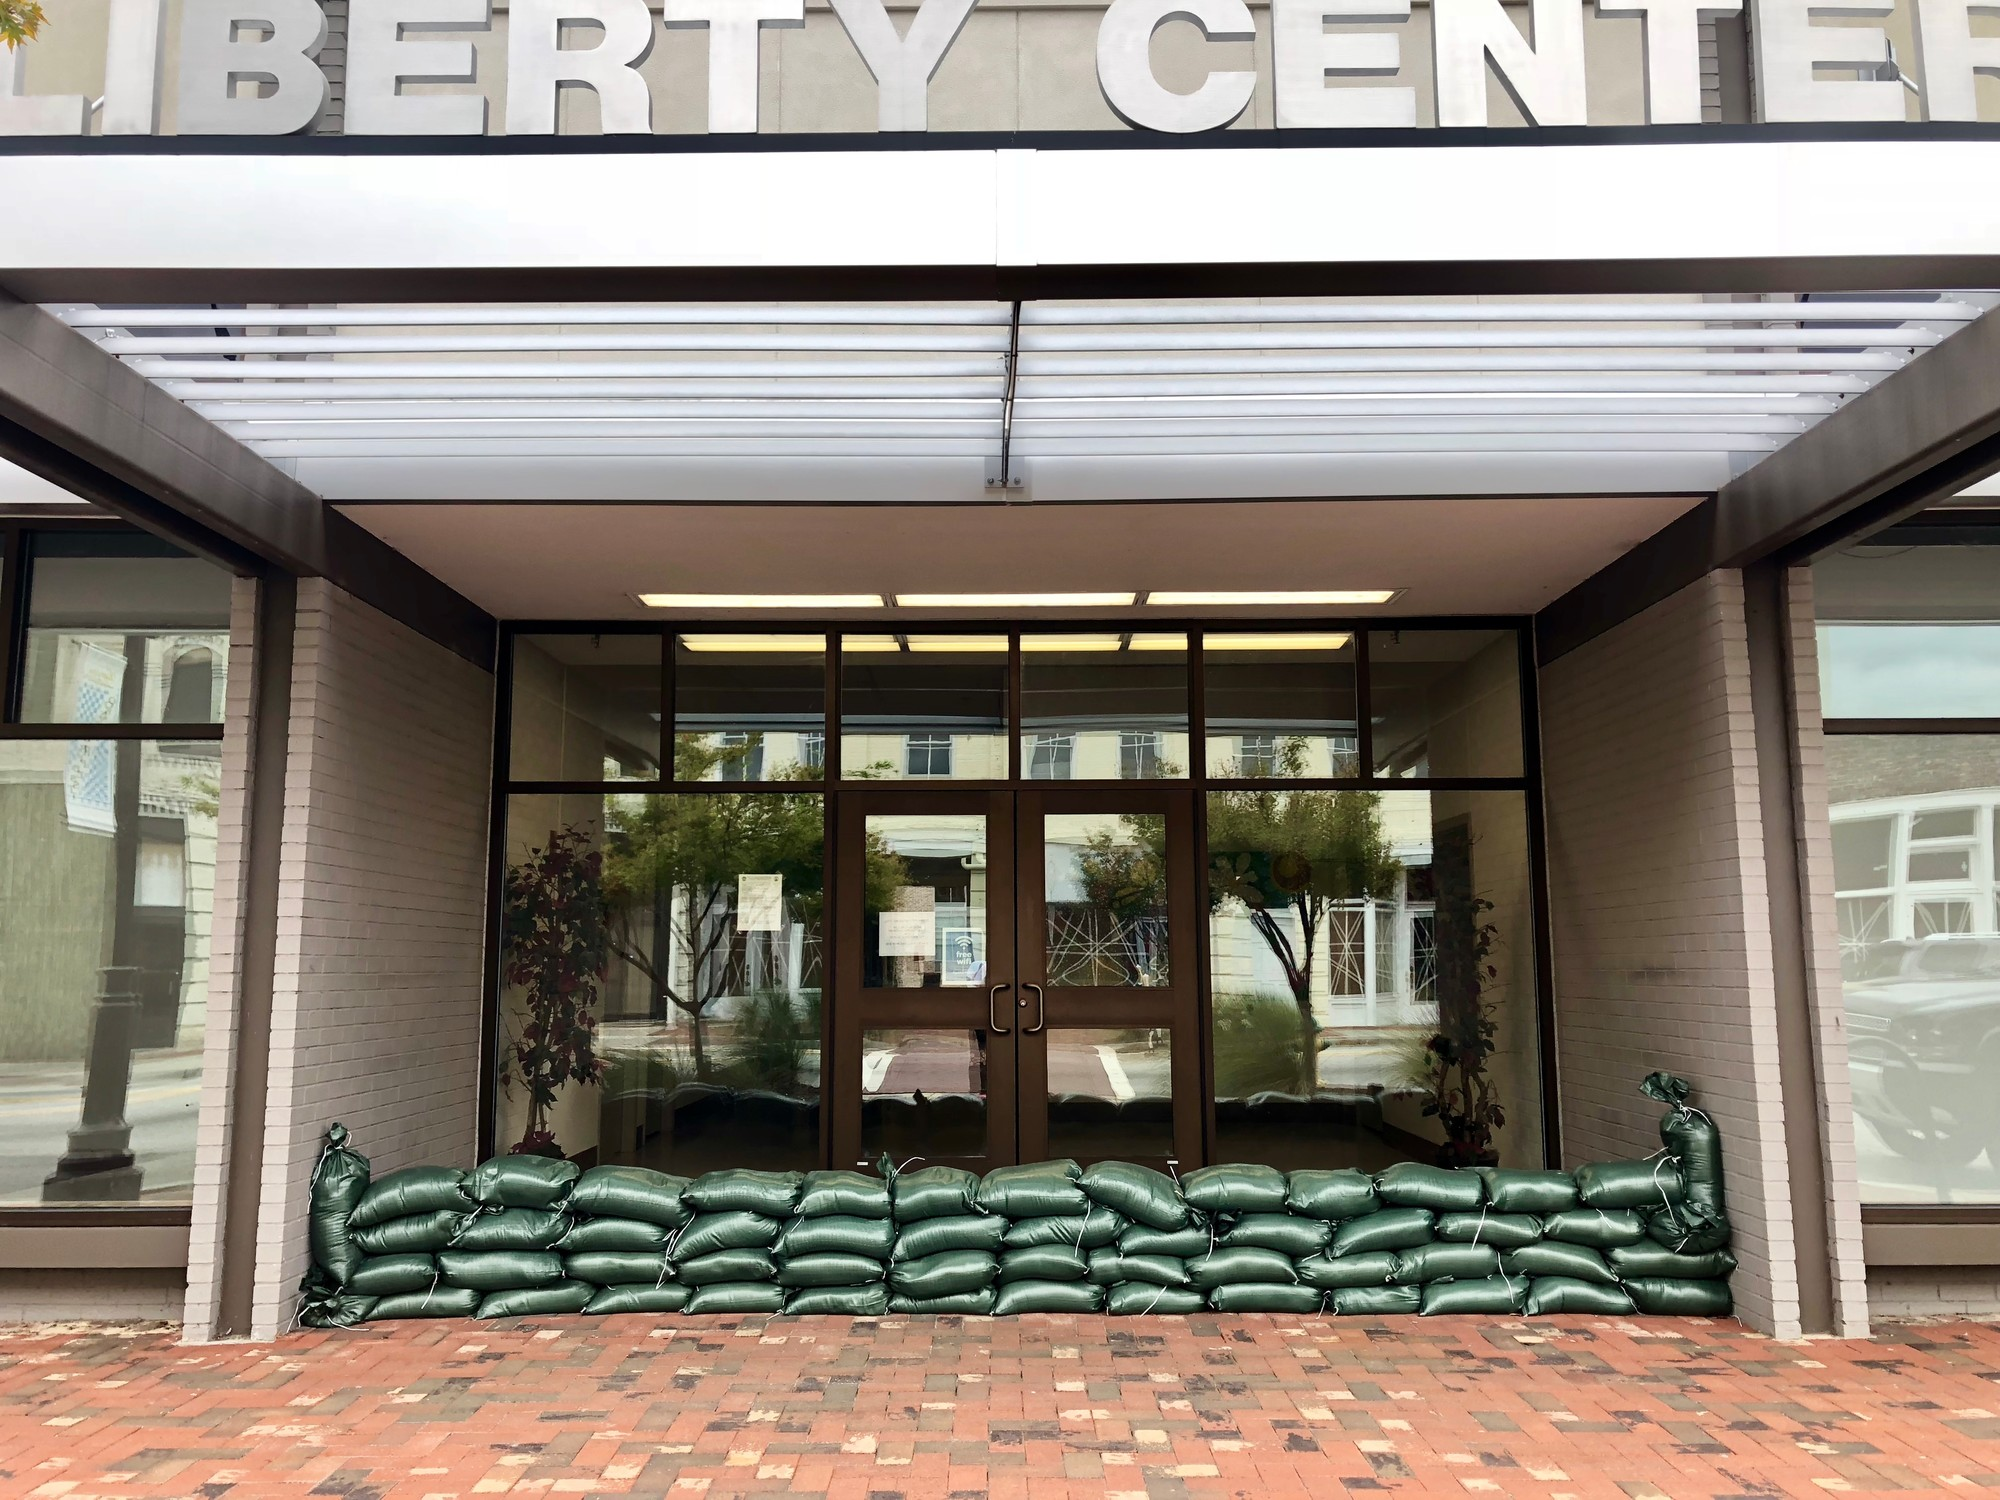 The Liberty Center in downtown Sumter is barricaded by sandbags Friday afternoon.